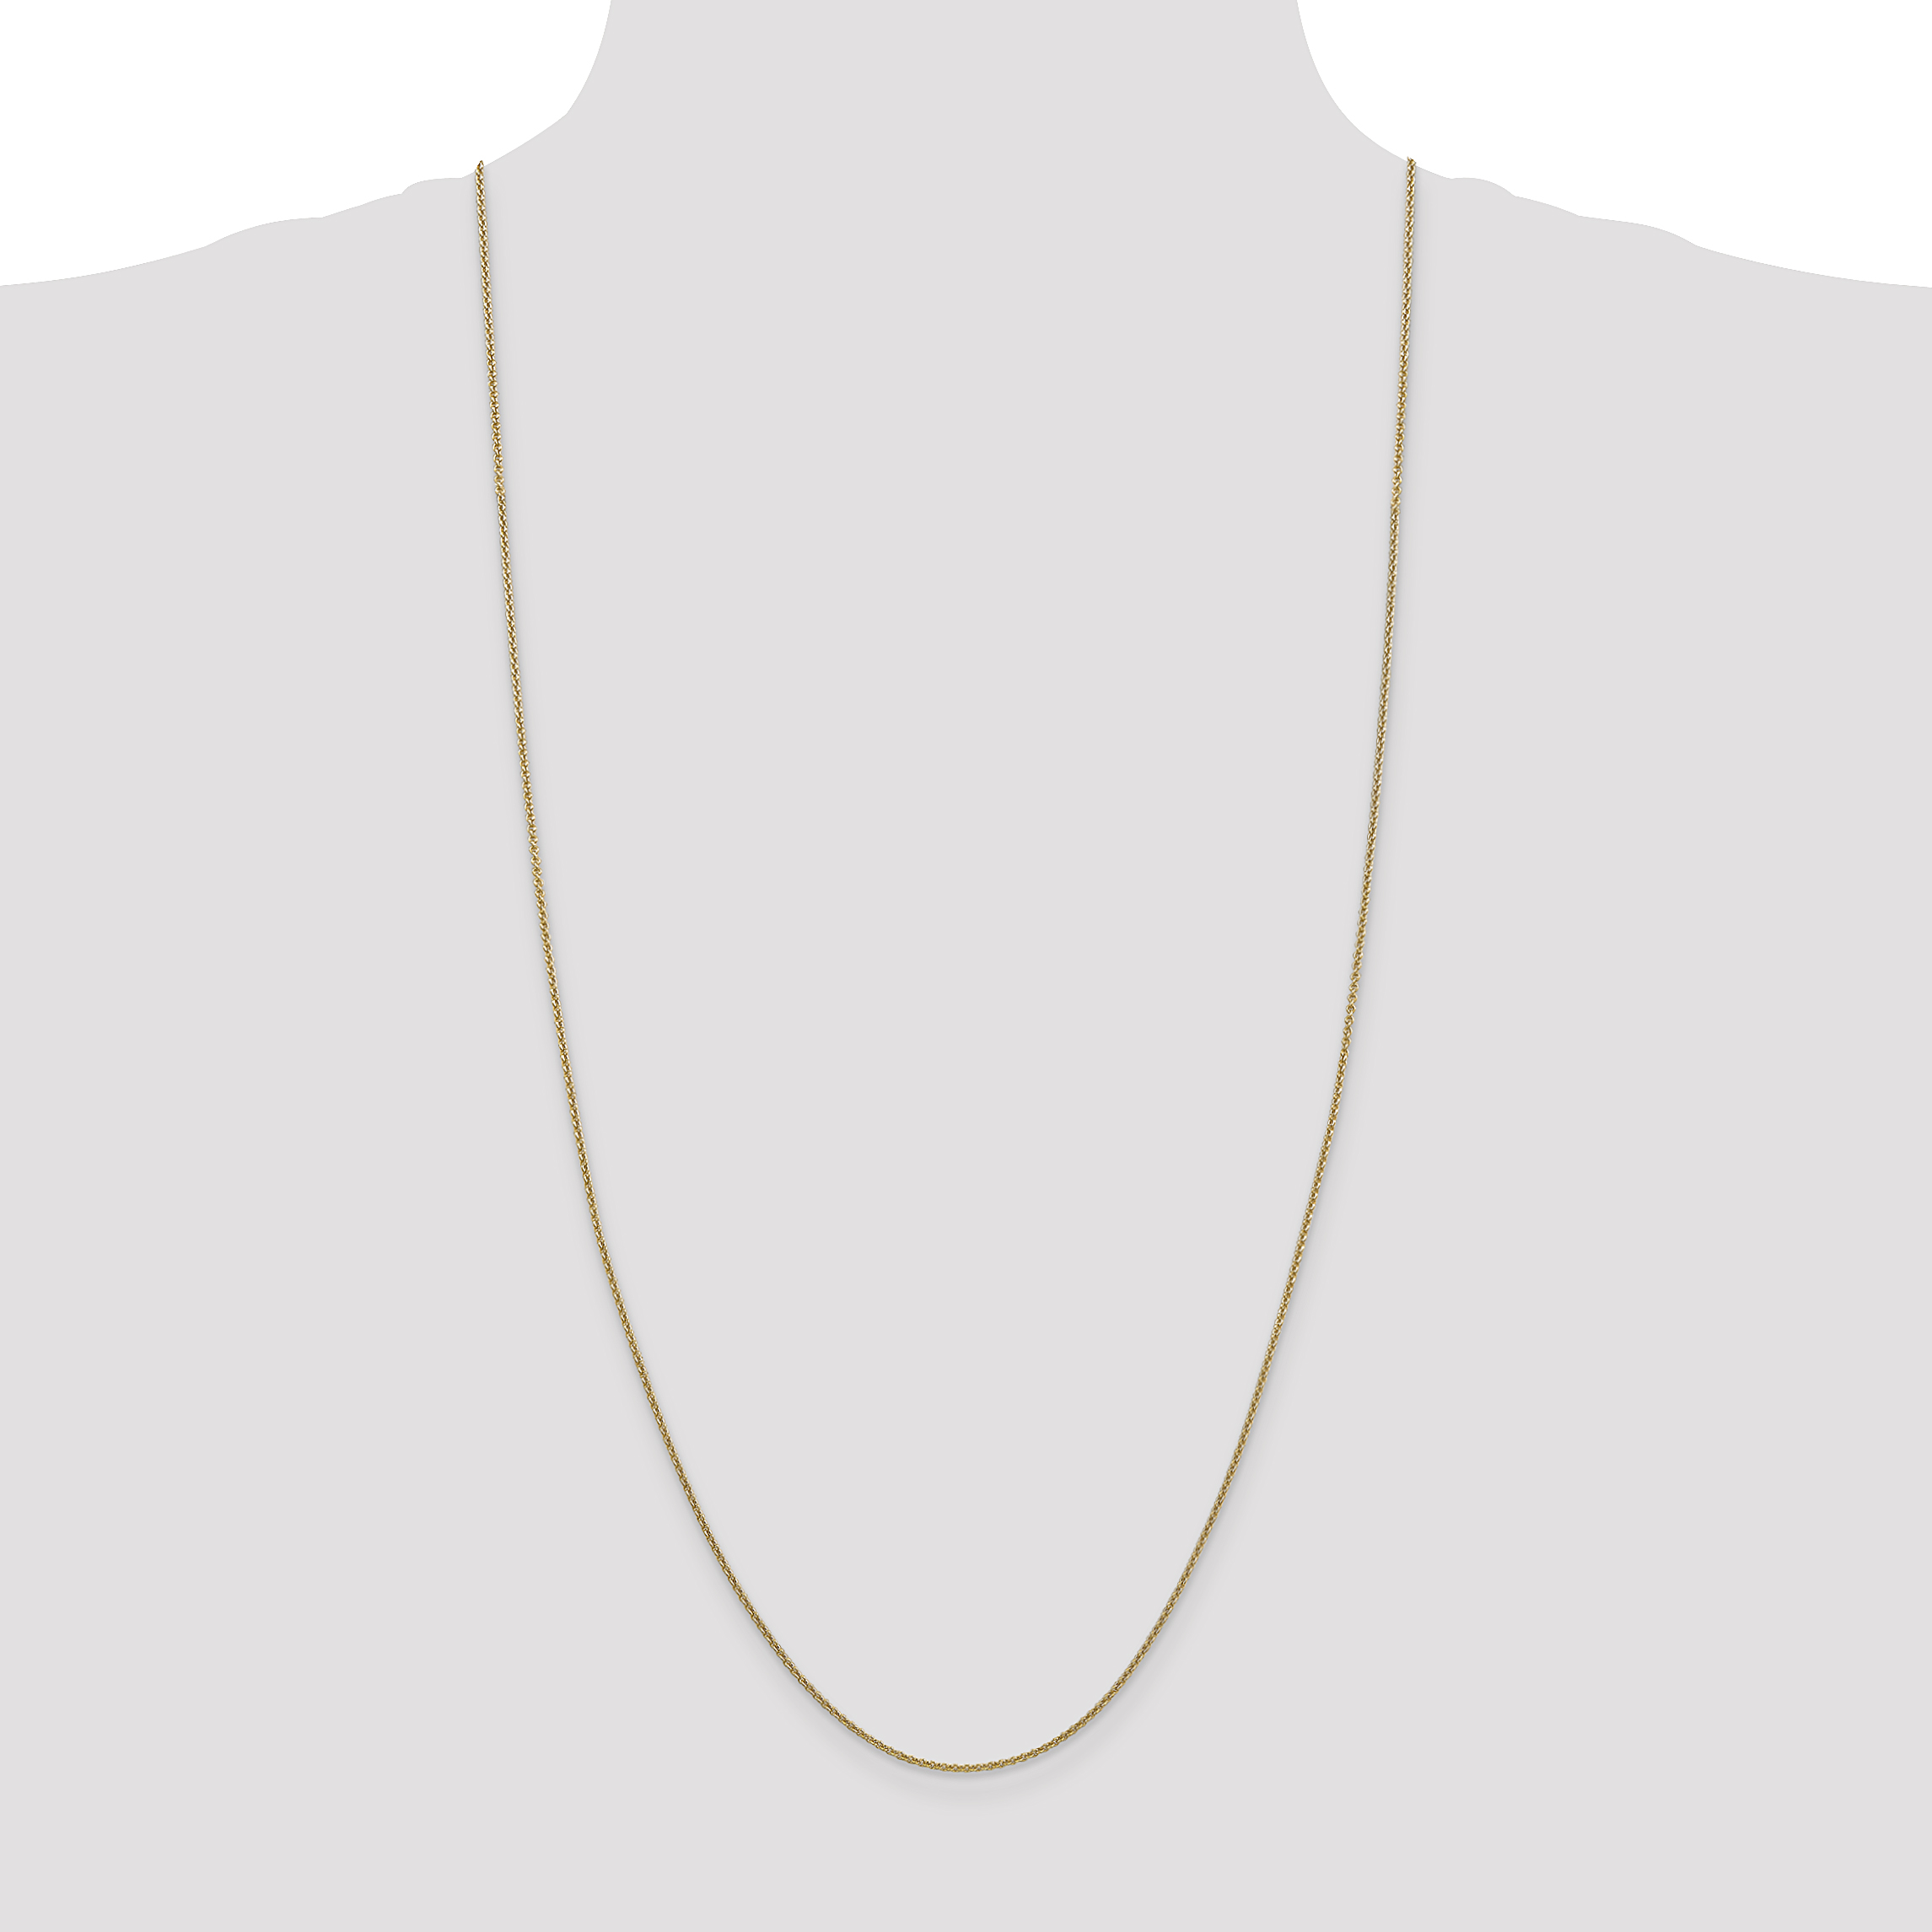 14k Yellow Gold 1.5mm Link Cable Chain Necklace 30 Inch Pendant Charm Fine Jewelry Gifts For Women For Her - image 1 of 5